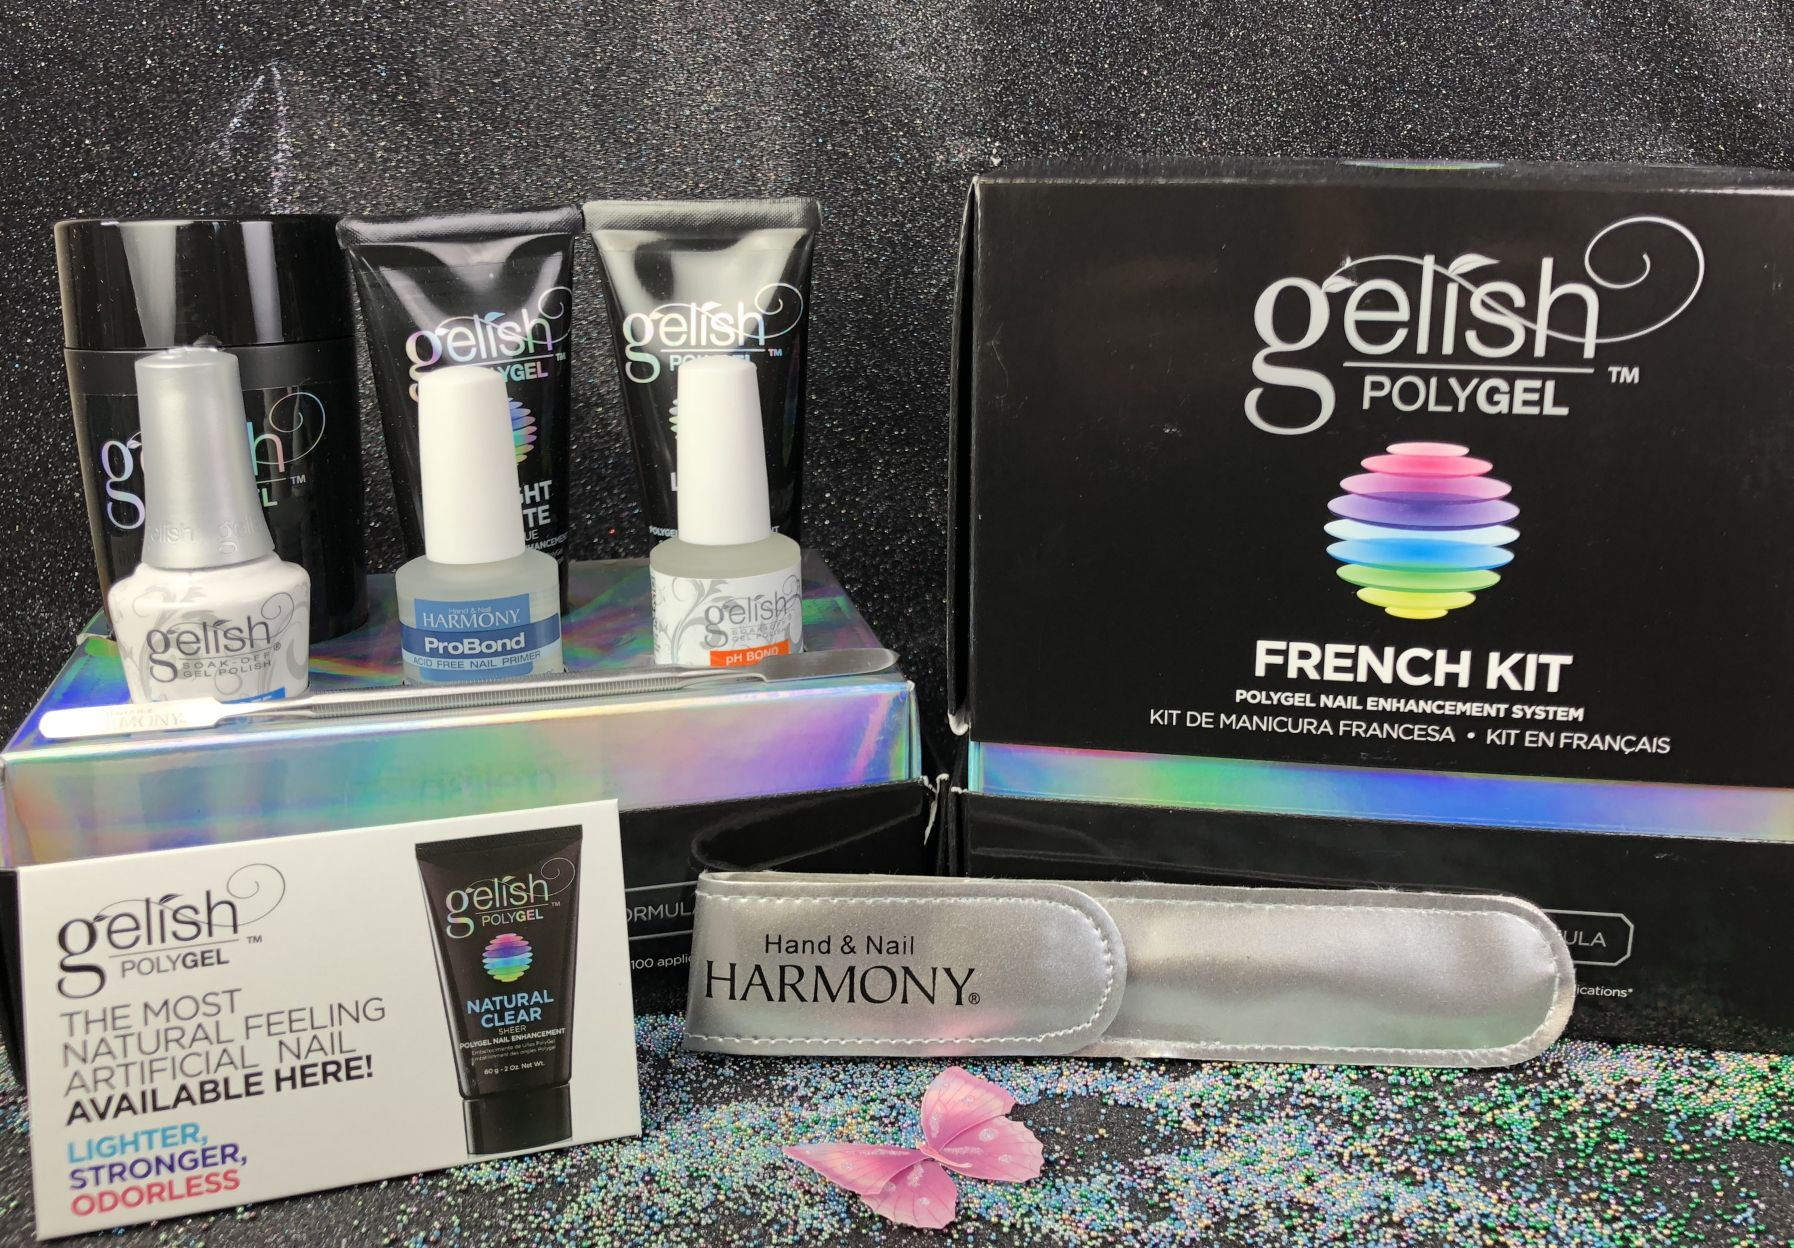 Gelish Polygel French Kit 1720002 I Gel Nails Com